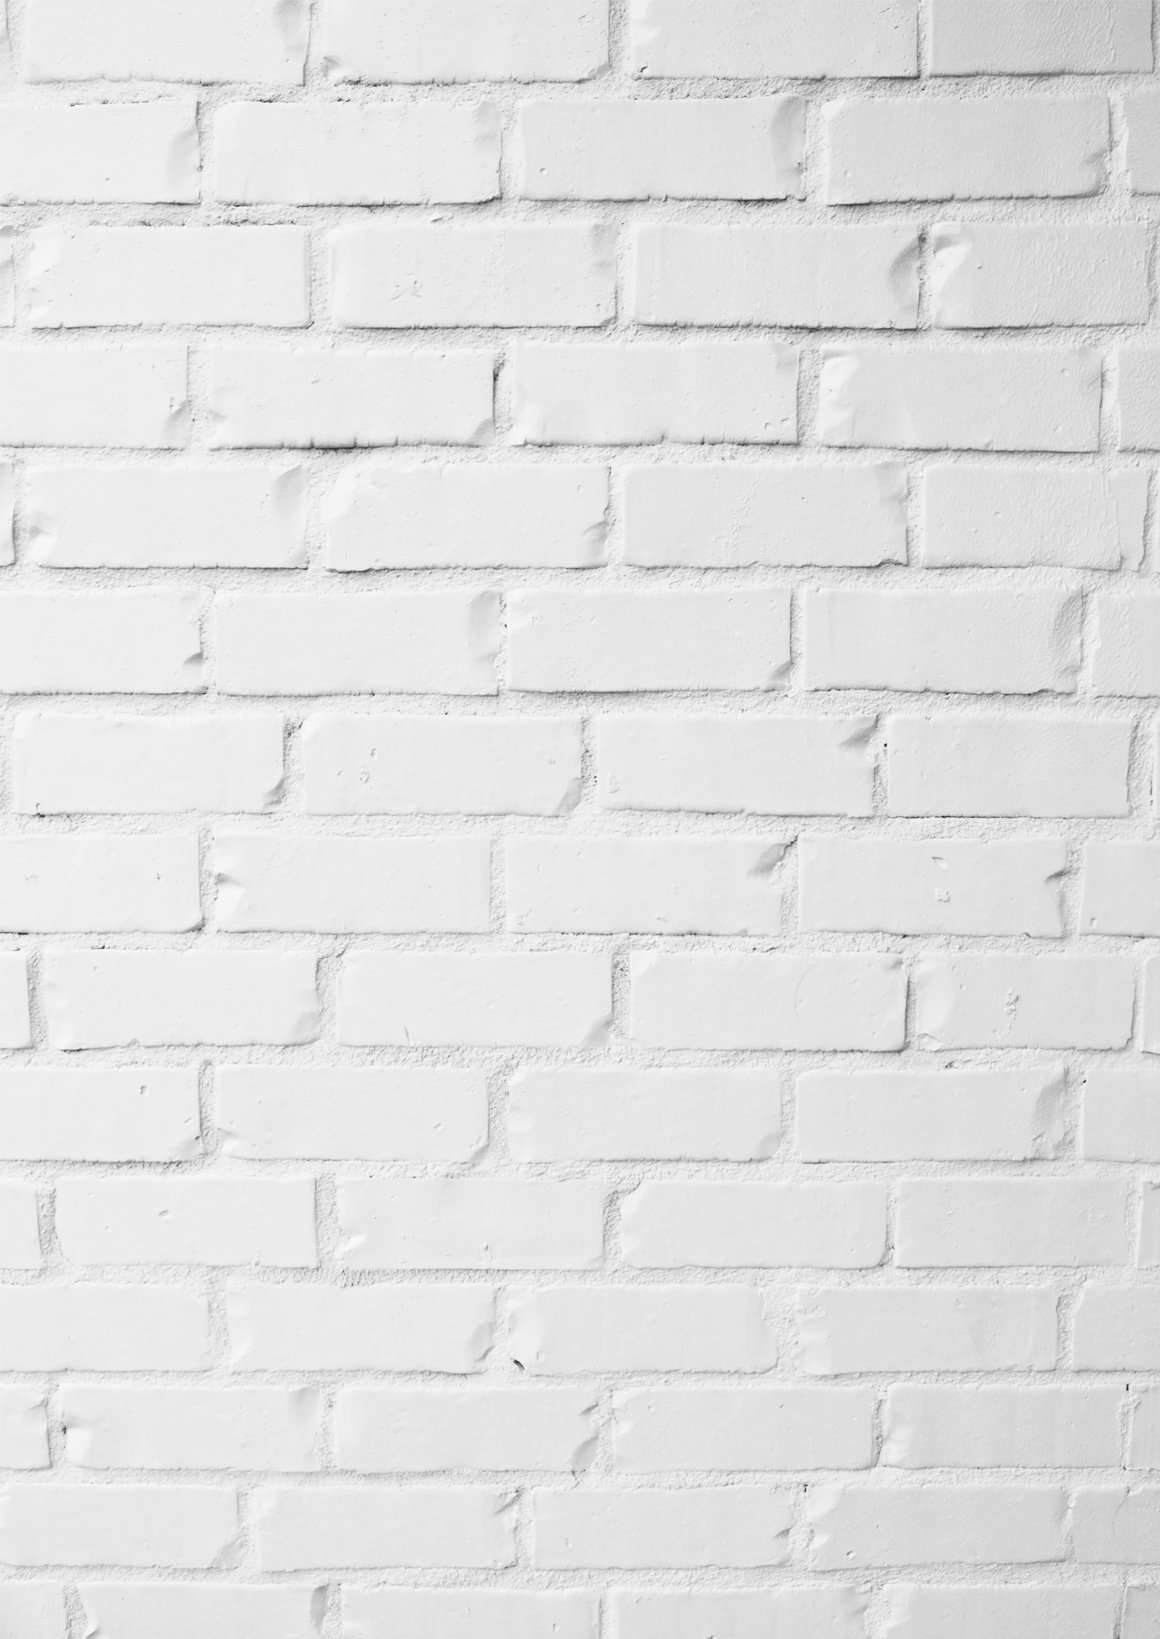 white brick wall texture textures creative market. Black Bedroom Furniture Sets. Home Design Ideas